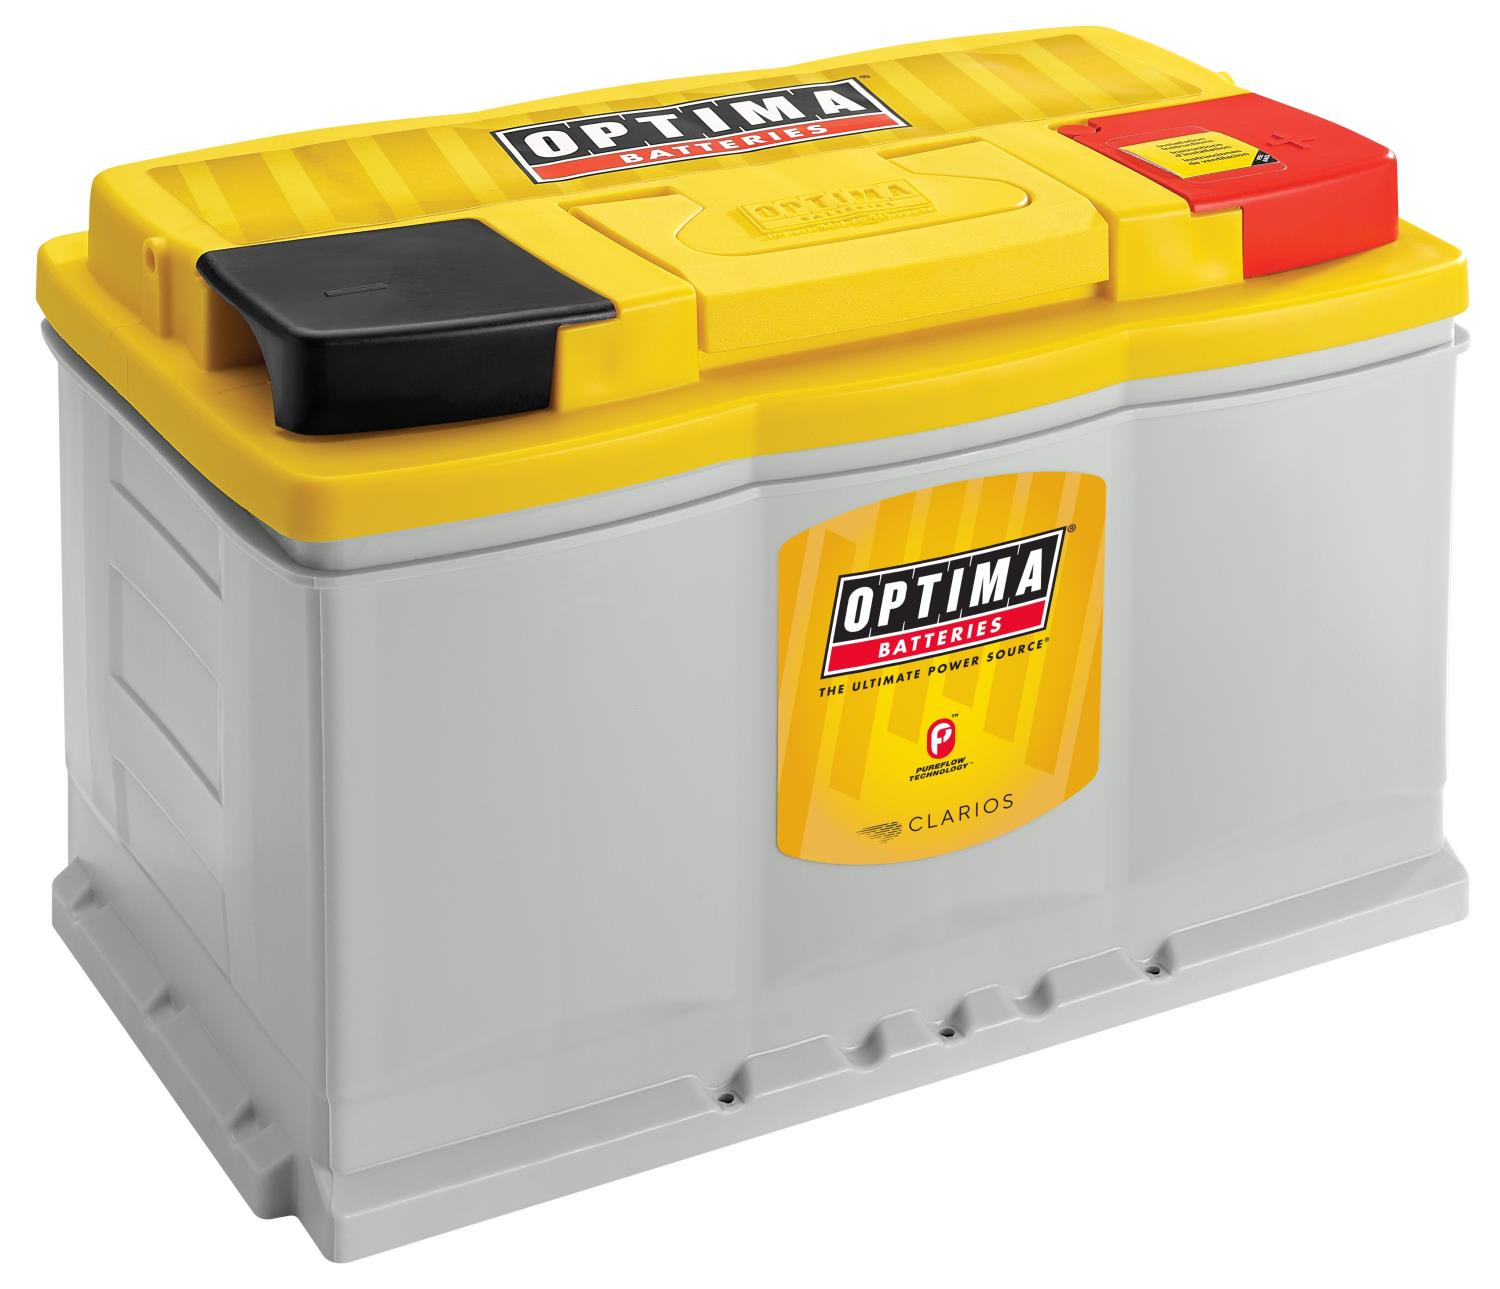 Optima Batteries Yellowtop Pureflow Deep Cycle Battery 12 Volts